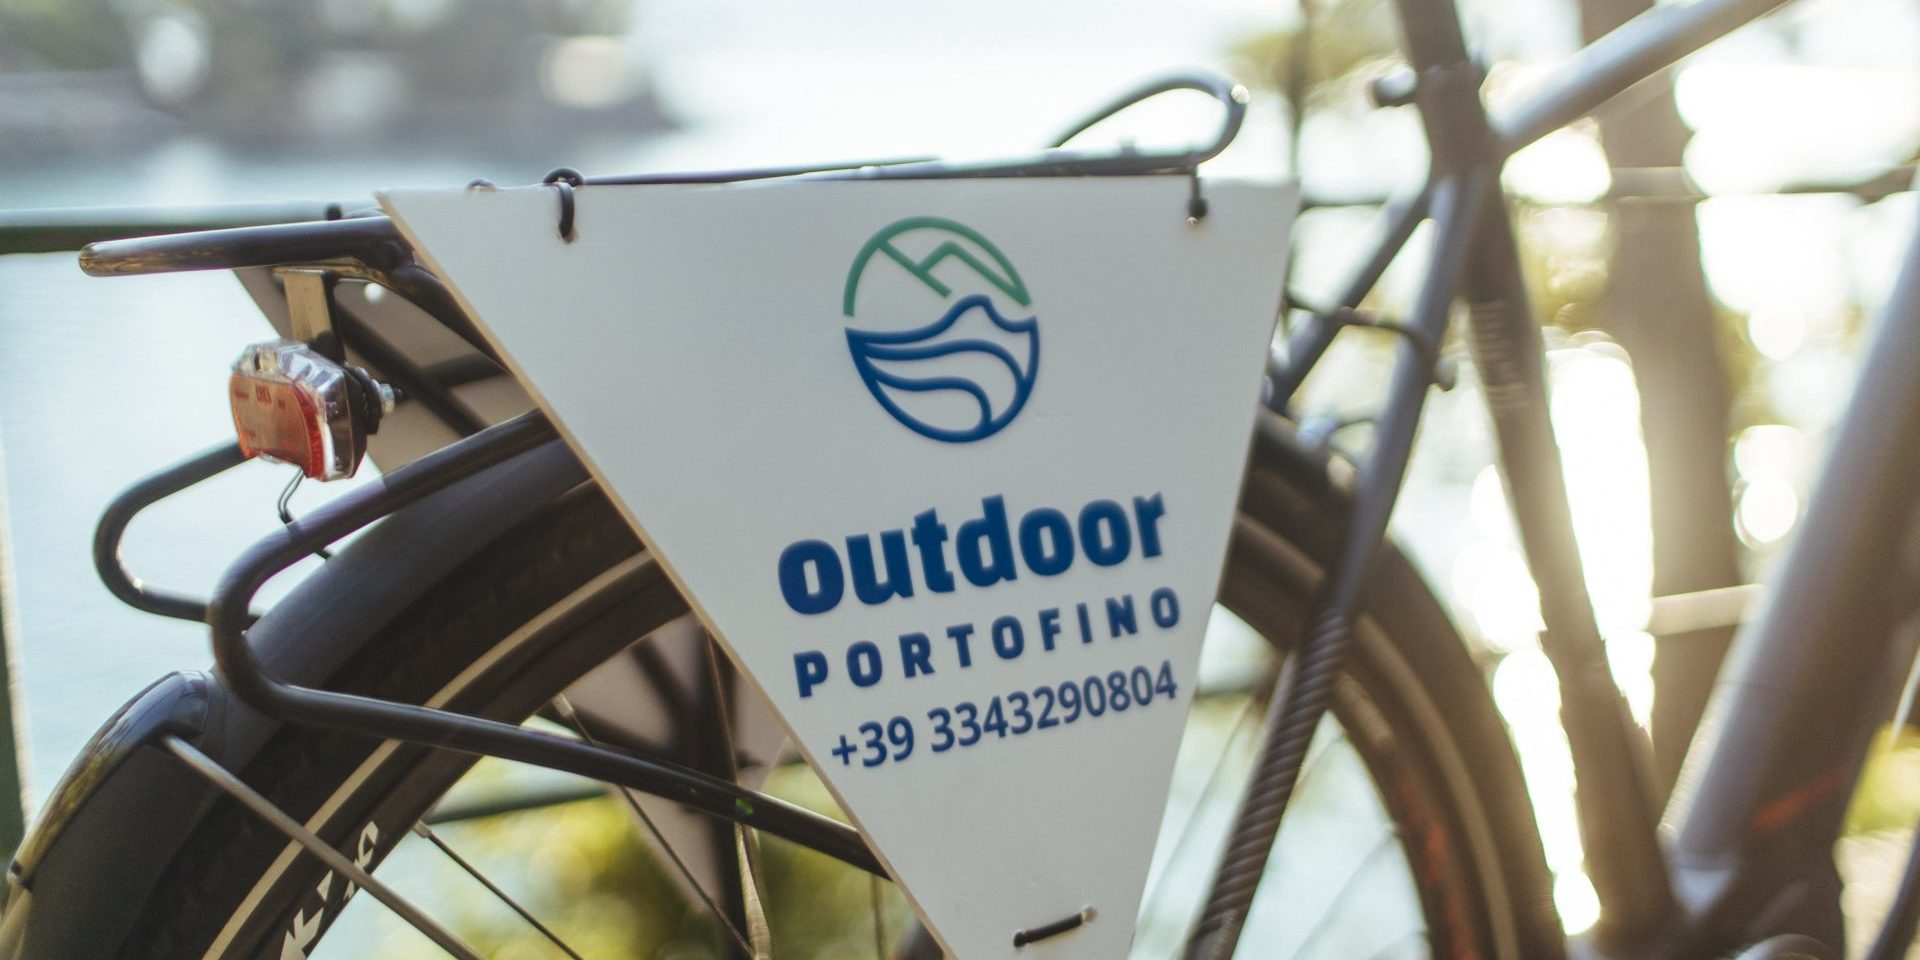 bici outdoor portofino